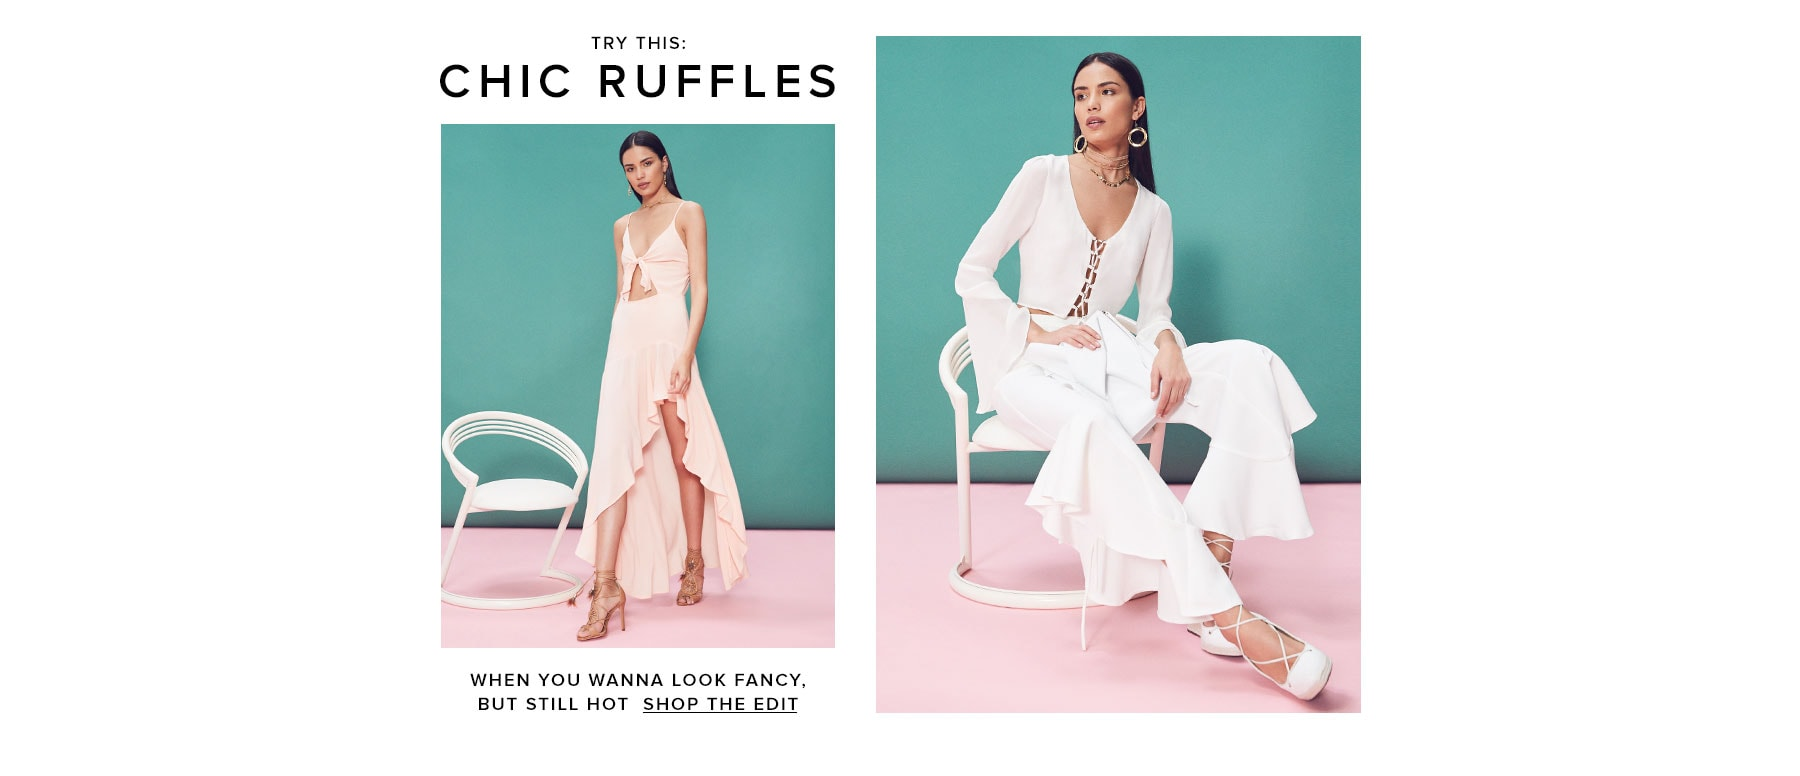 Try this: Chic ruffles. Shop the edit.